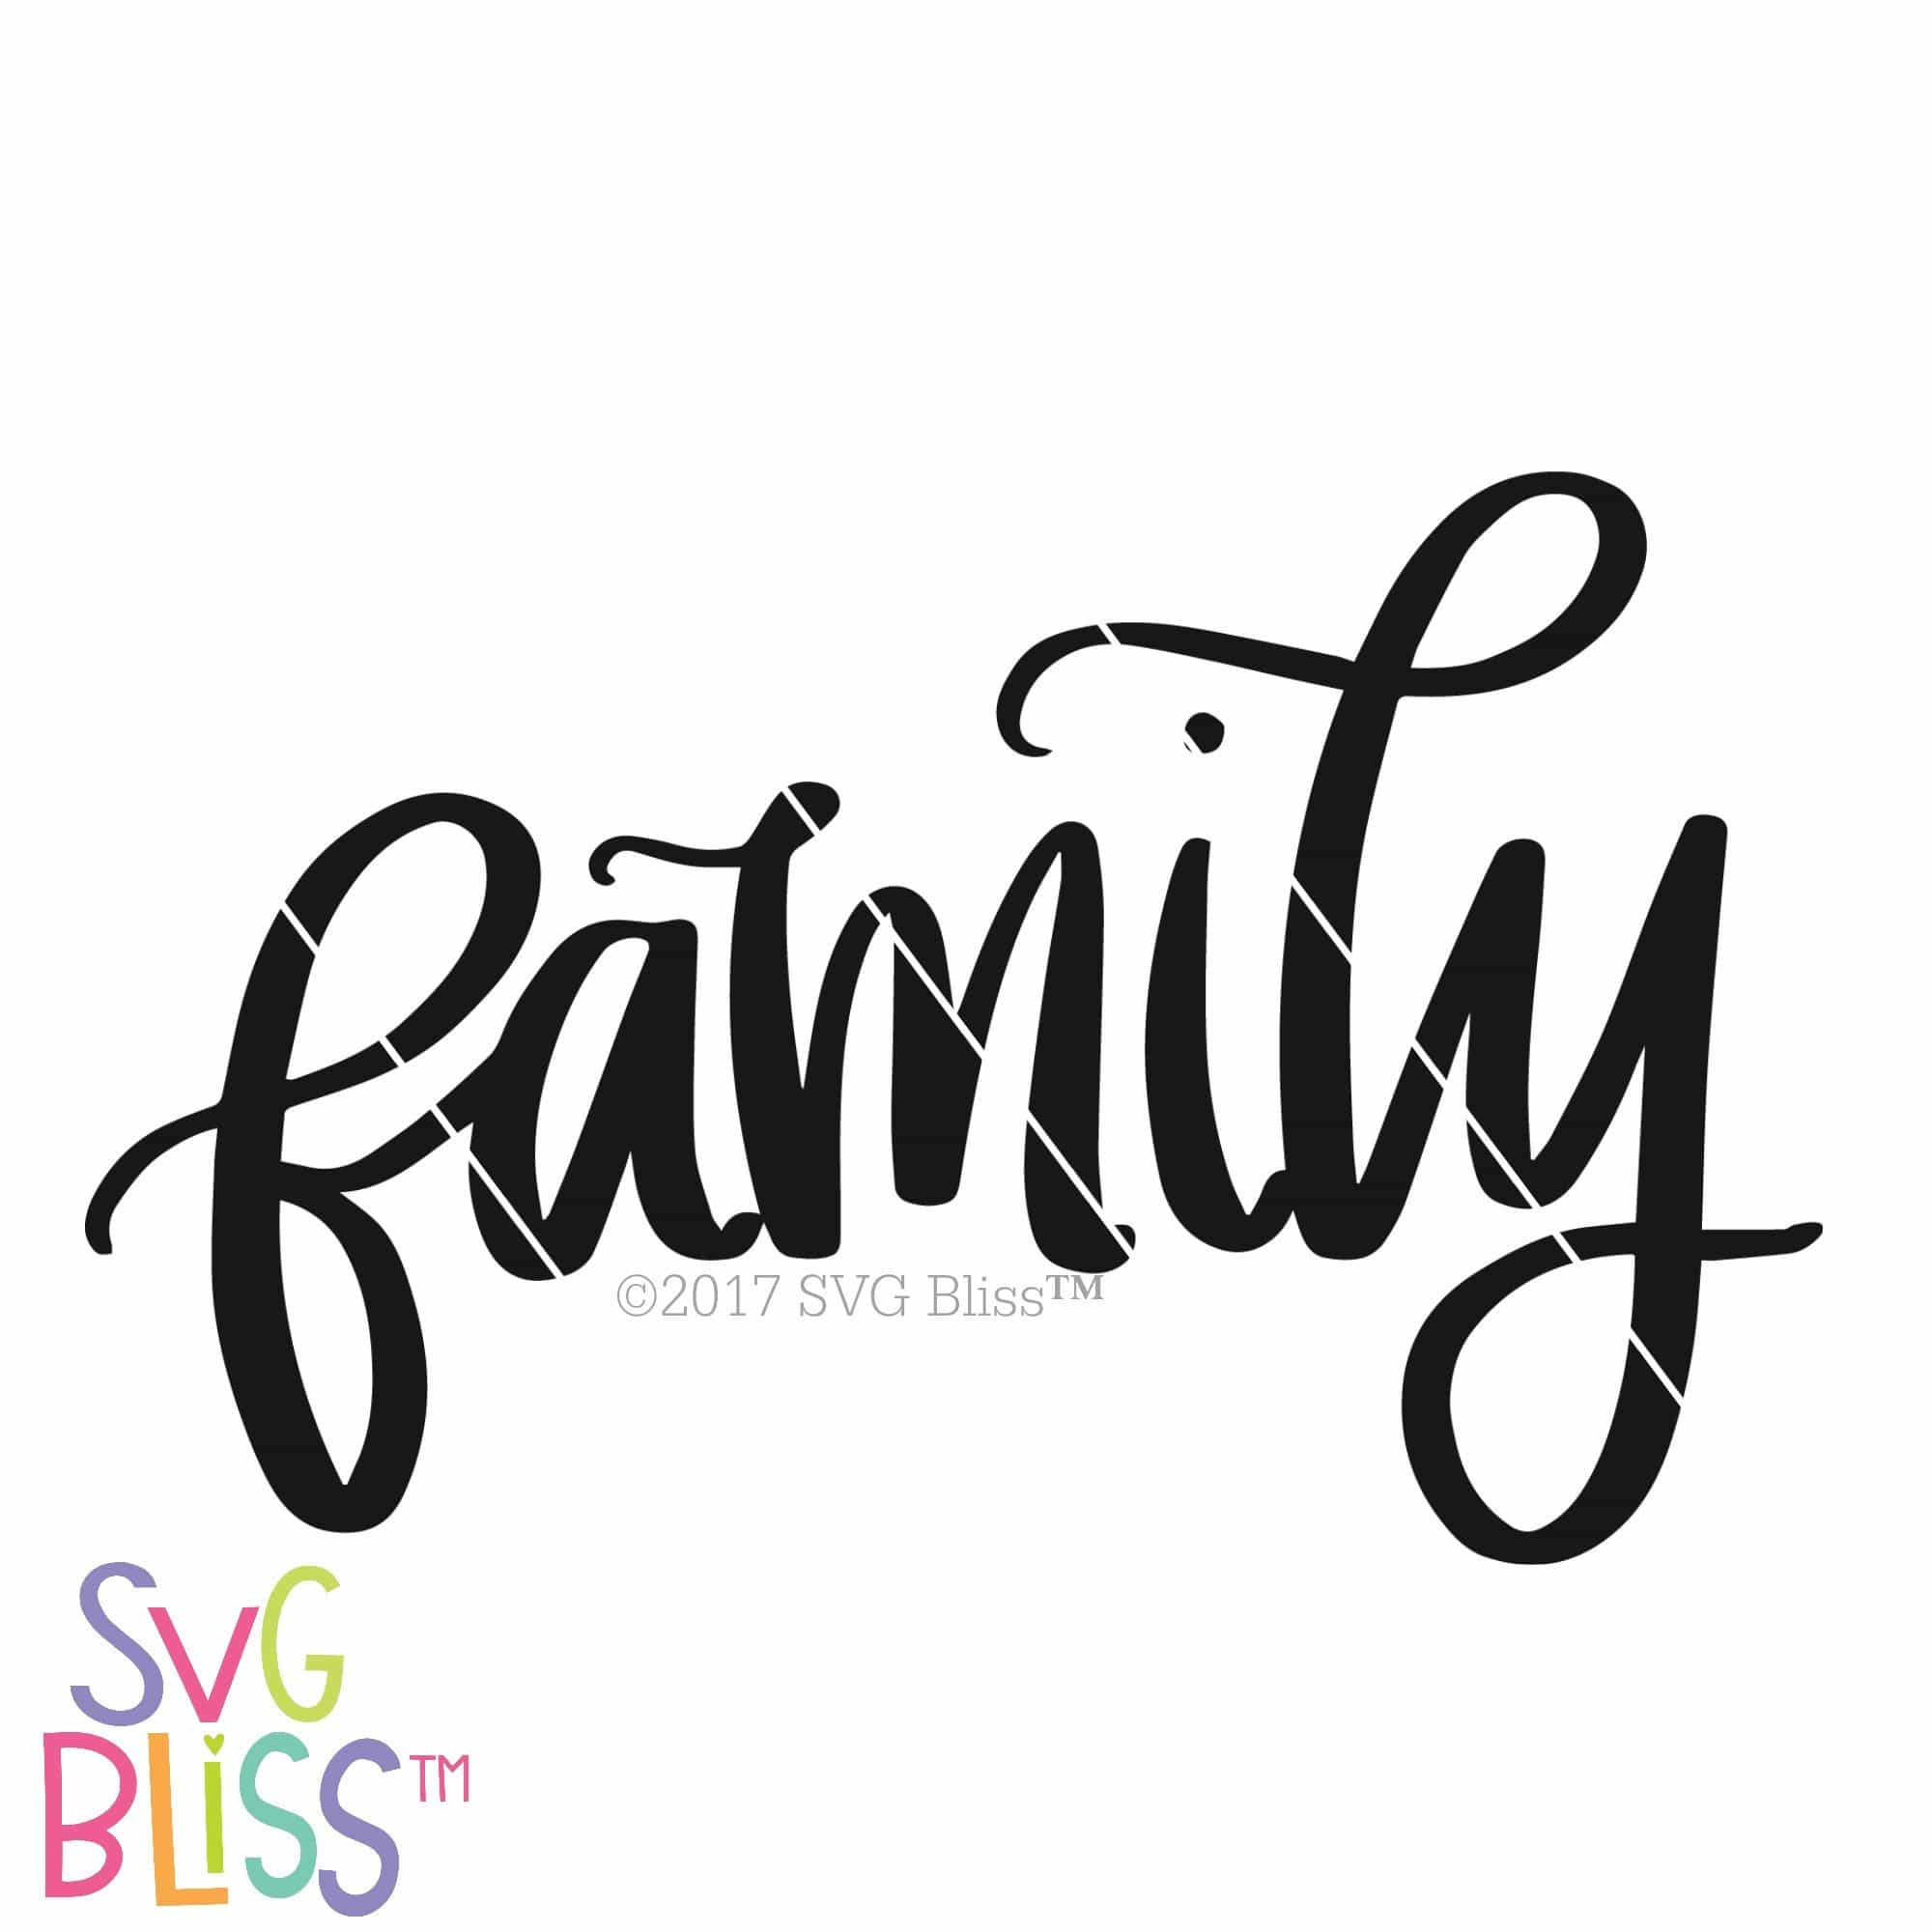 Family | SVG EPS DXF PNG - SVG Bliss